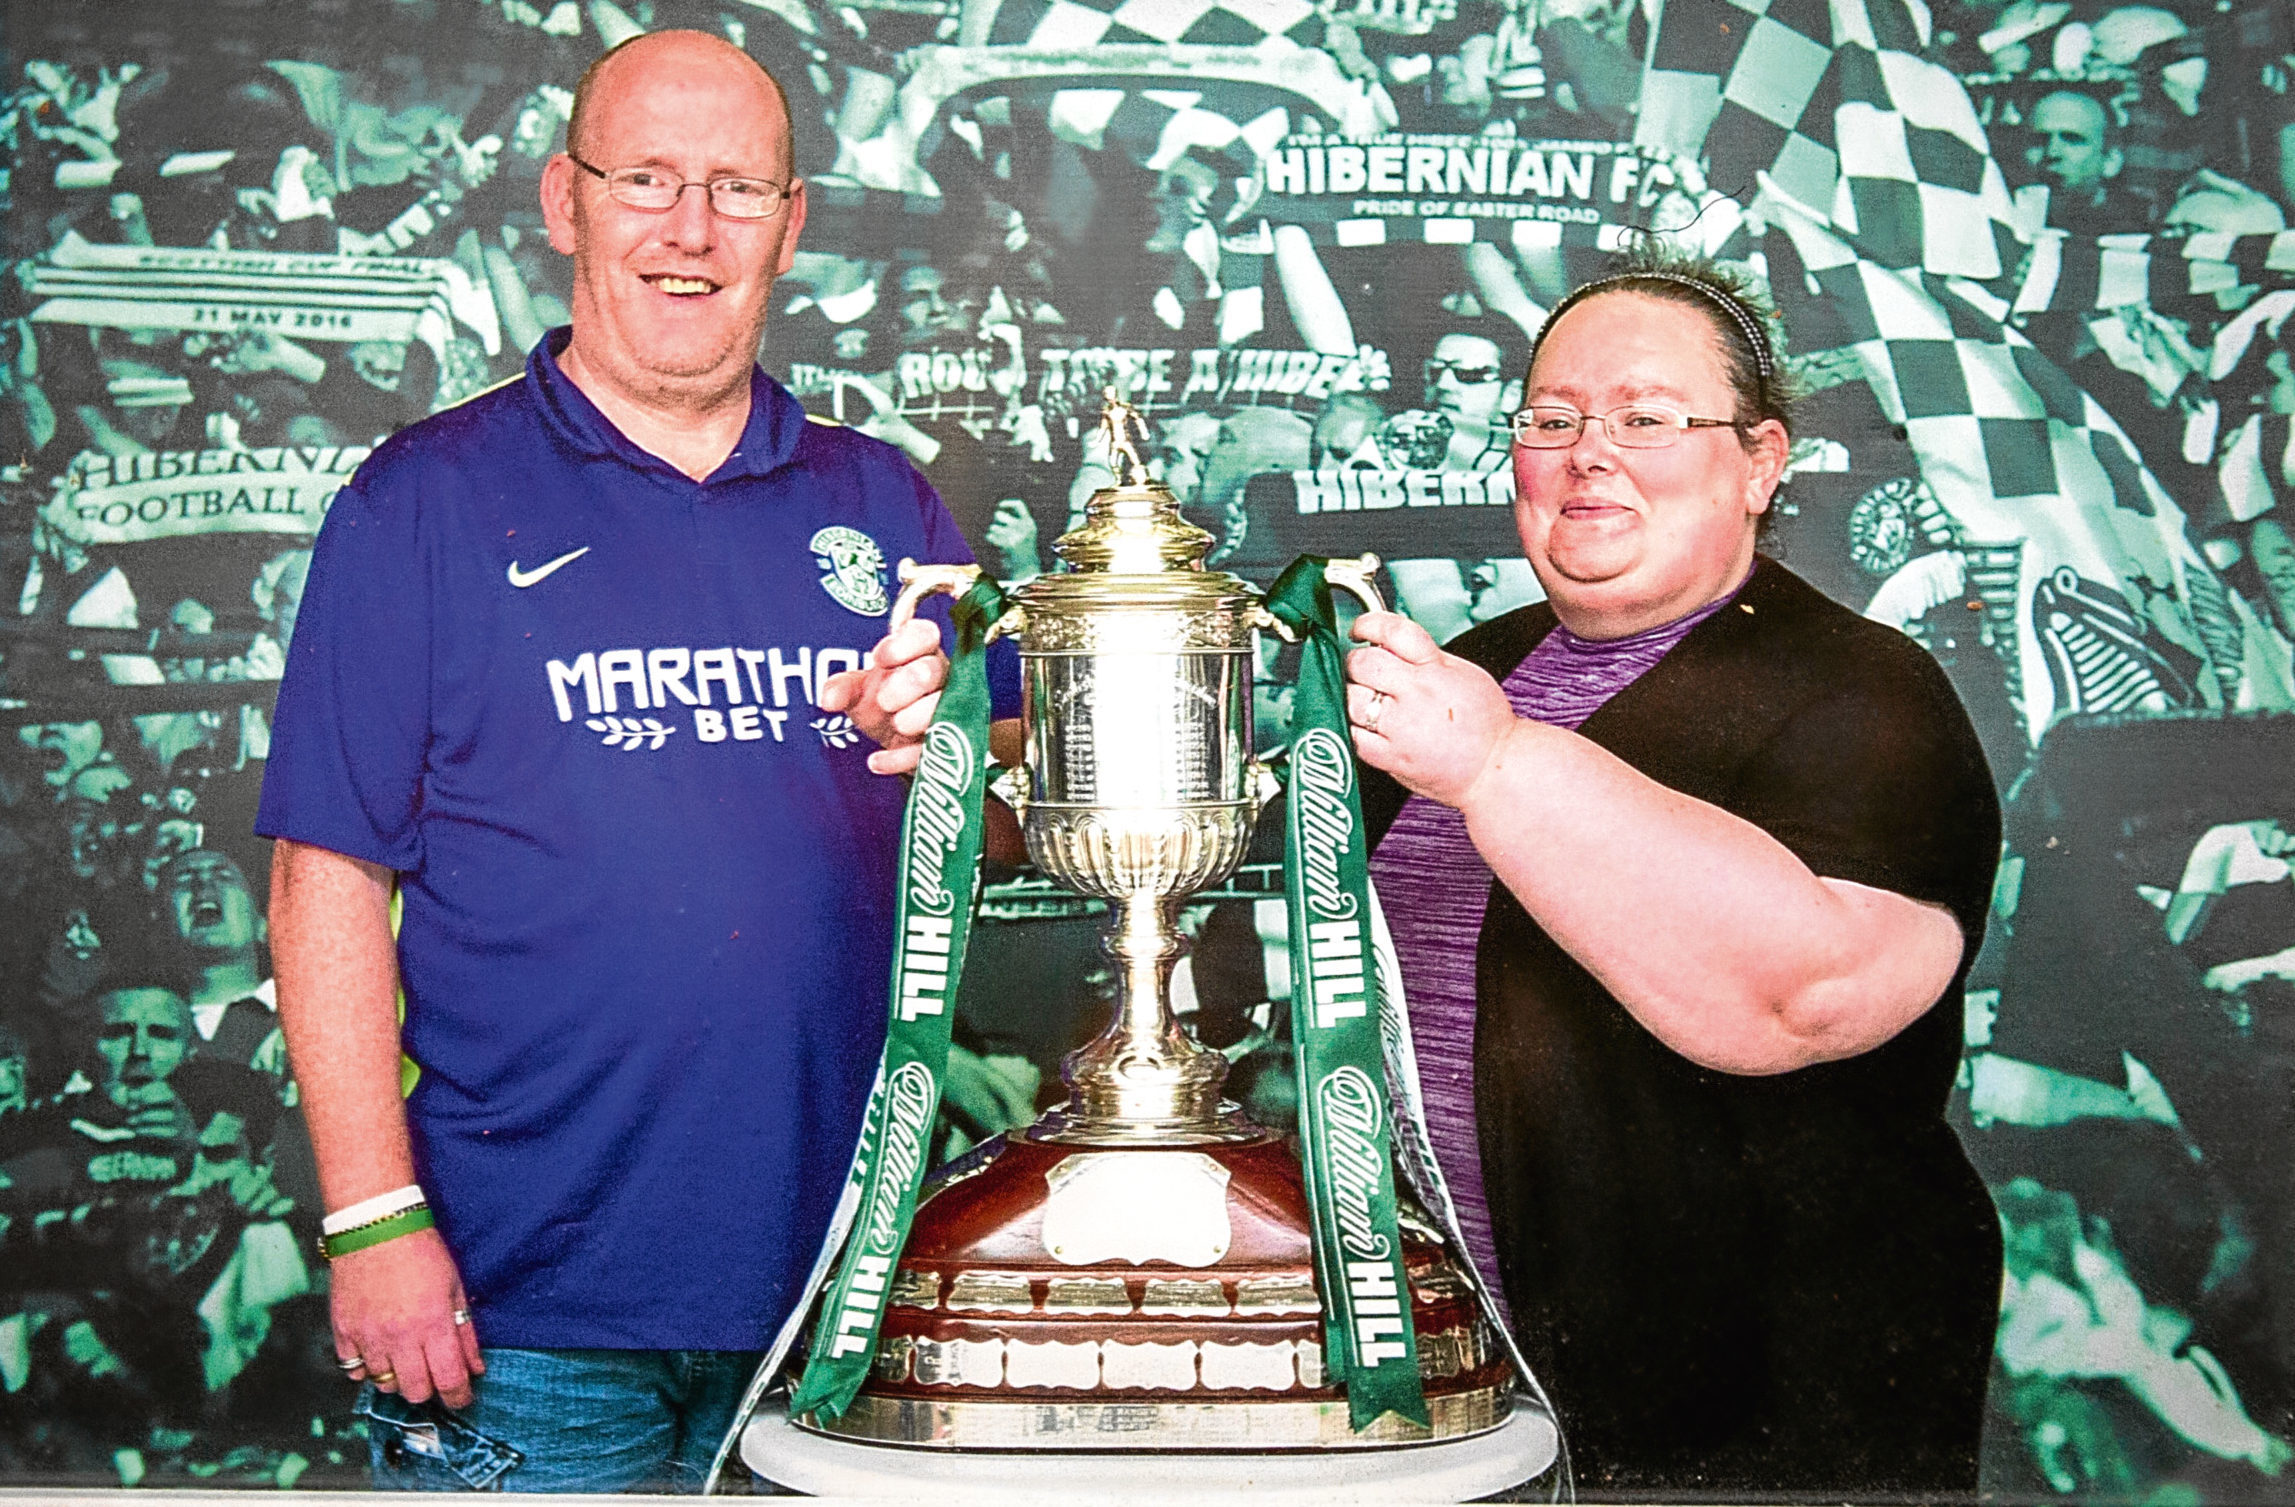 Willie and Tracey Halliday with the Scottish Cup after Hibs won it in 2016.